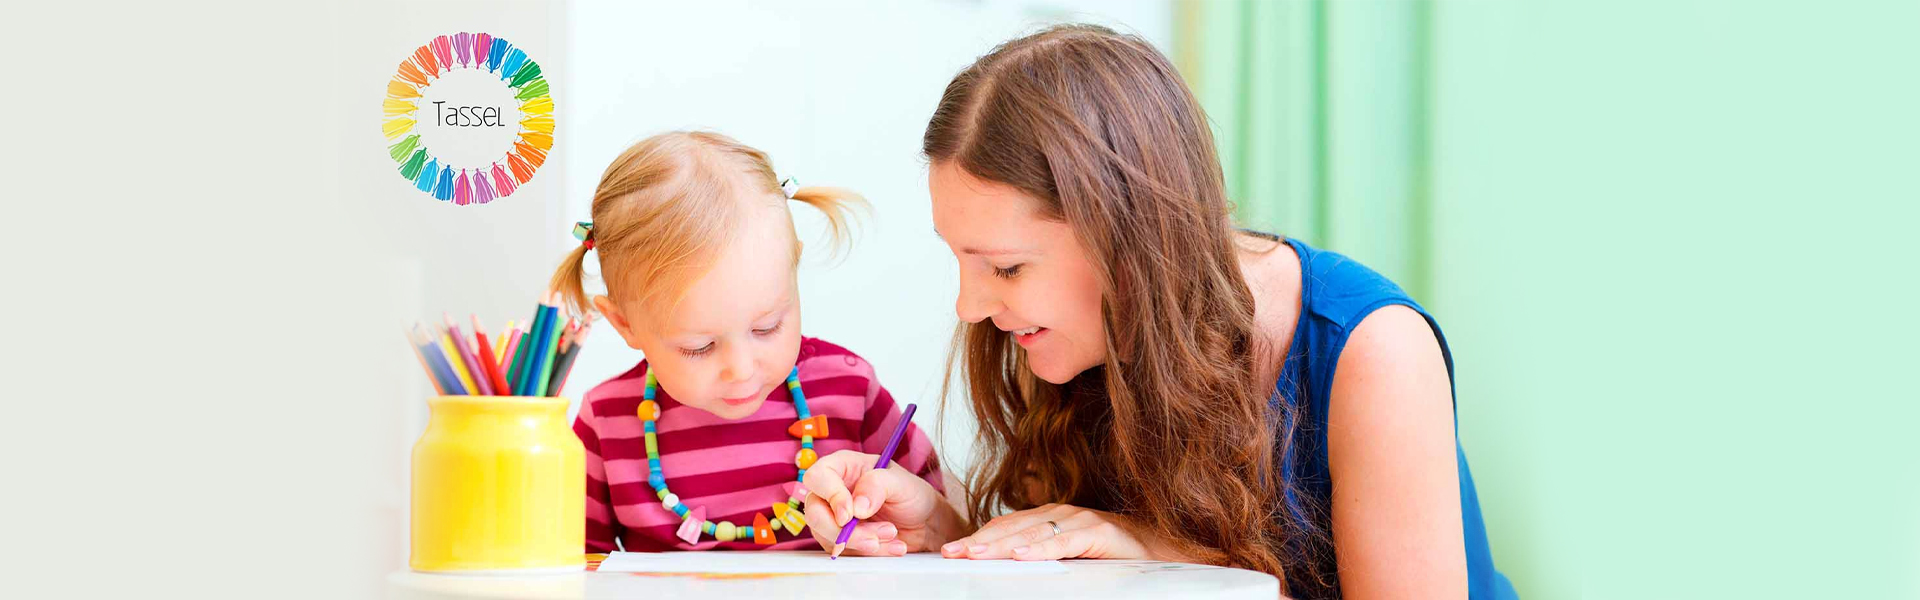 5 Ways to Help Your Child WANT to Do What's Right